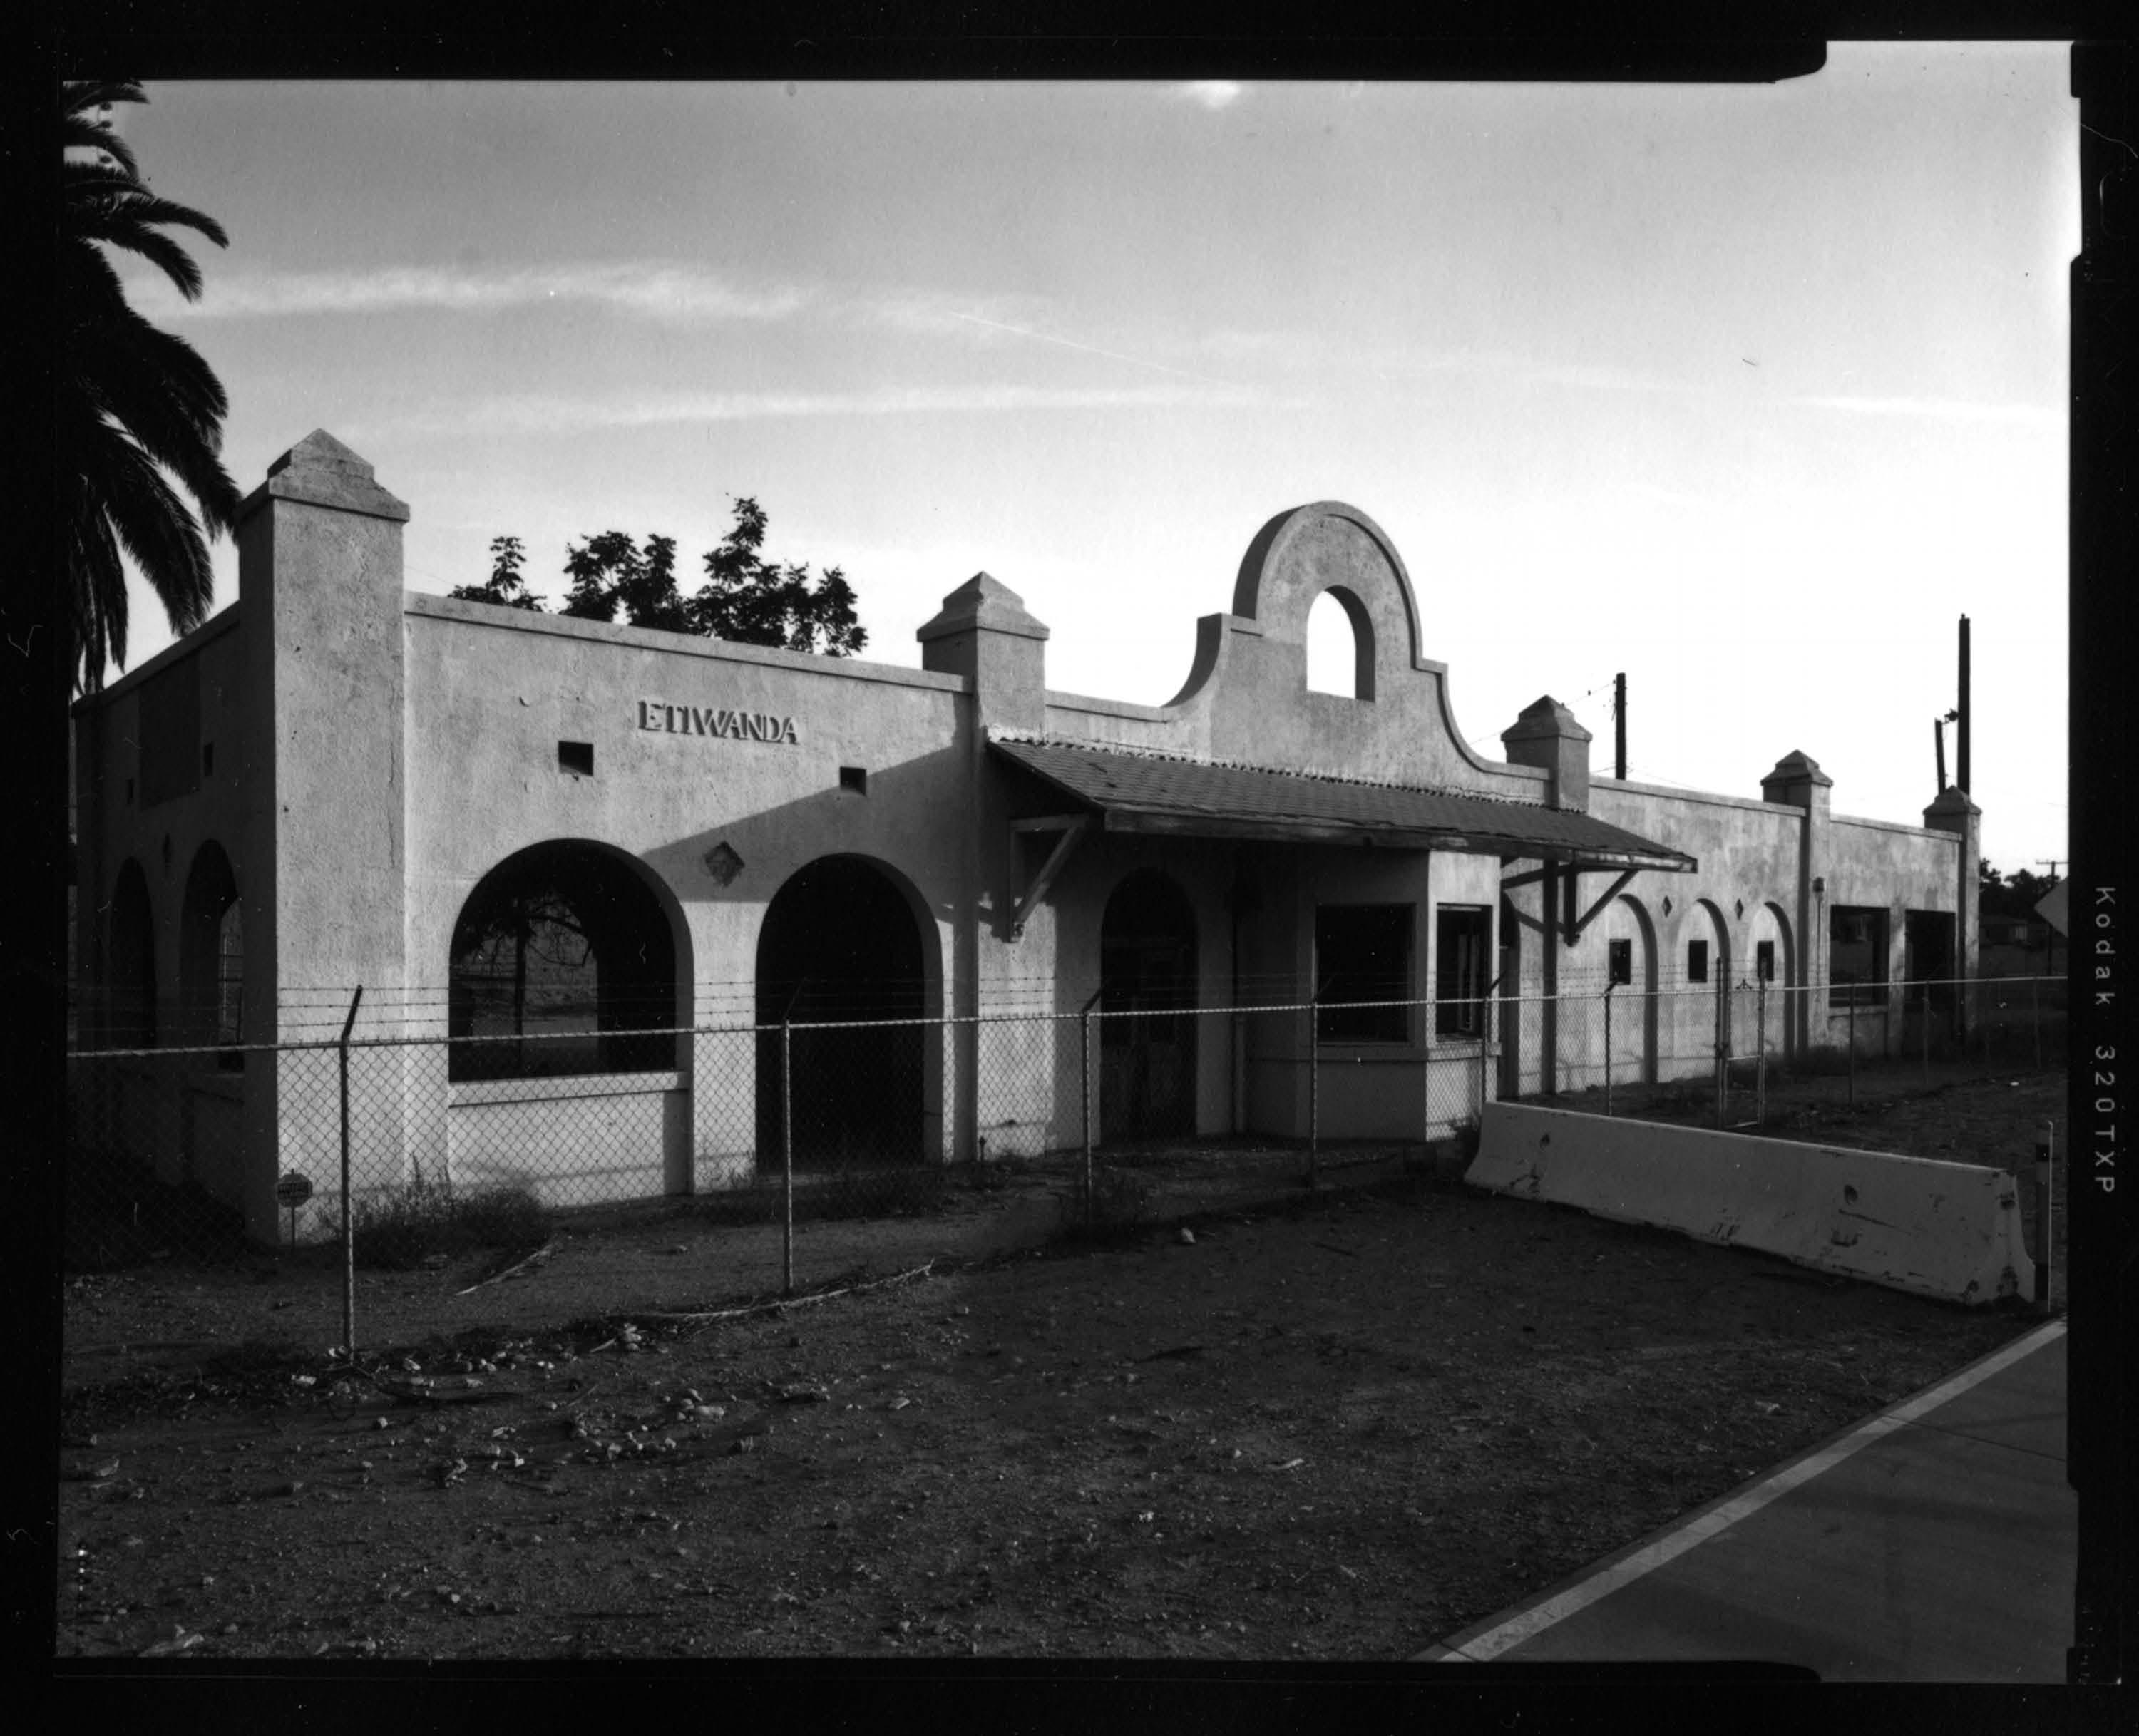 PHOTO: Pacific Electric Etiwanda Depot